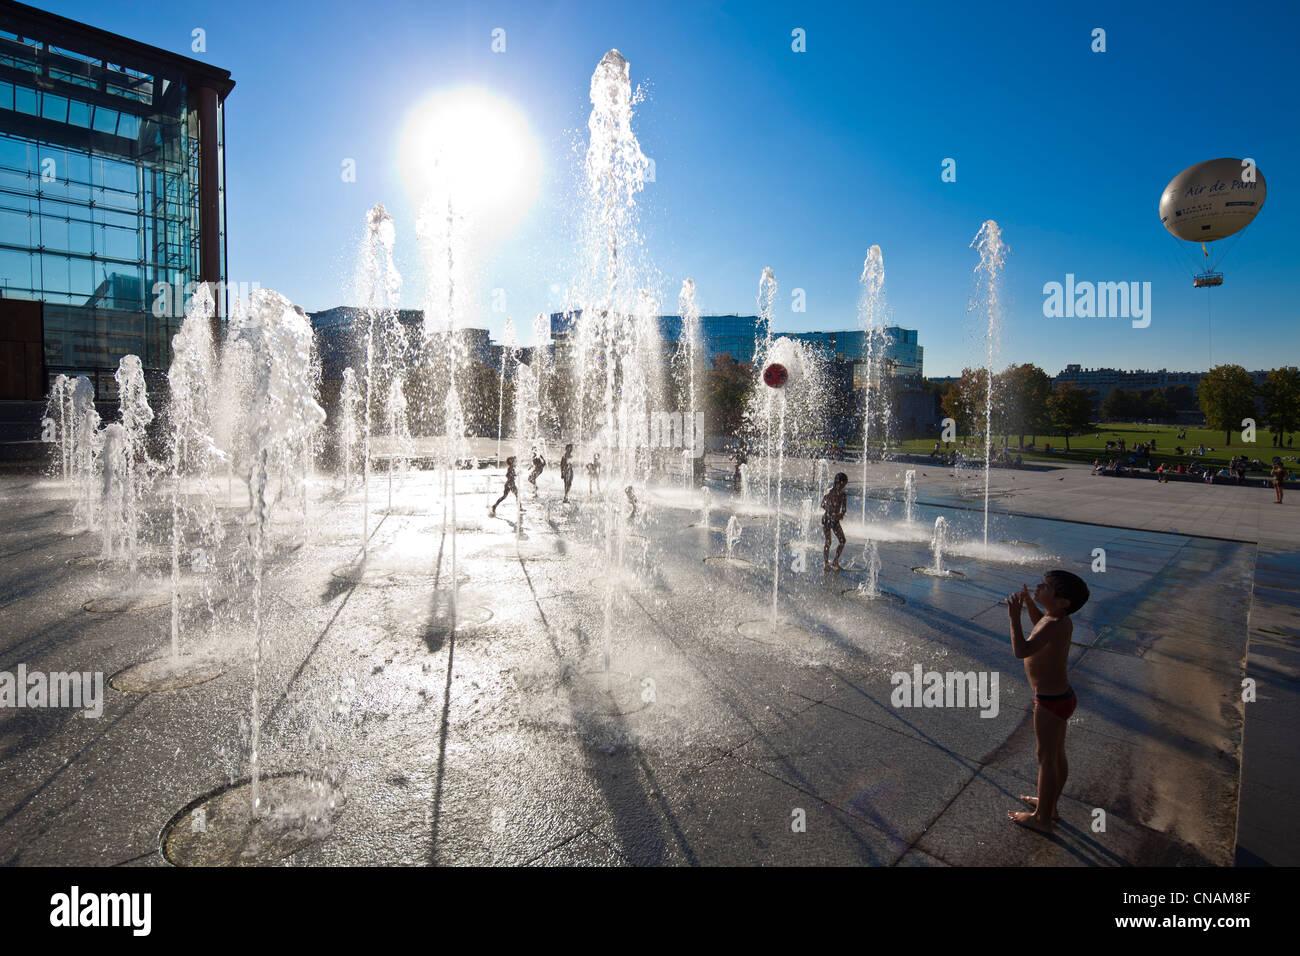 France, Paris, Andre Citroen park, 120 water jets are used as playground for children on hot summer days - Stock Image